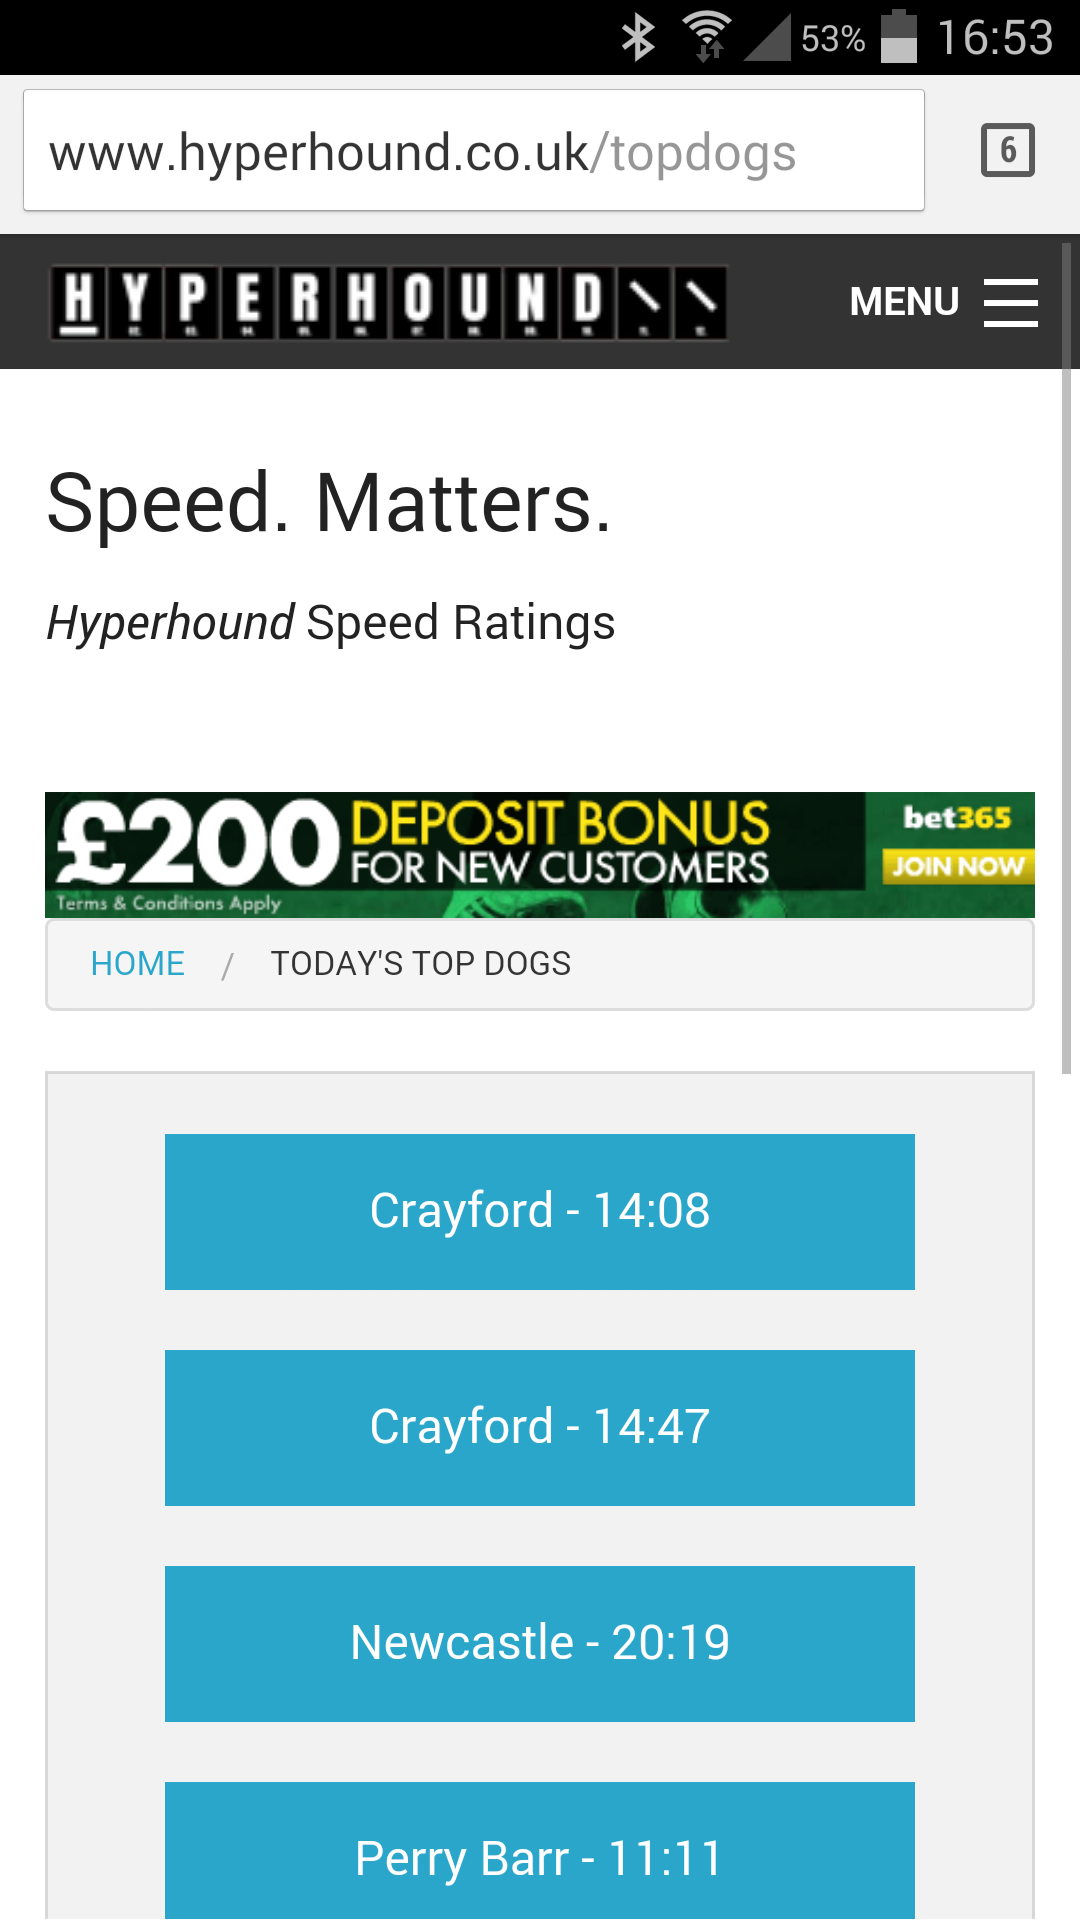 Hyperhound - Free Greyhound Speed Ratings